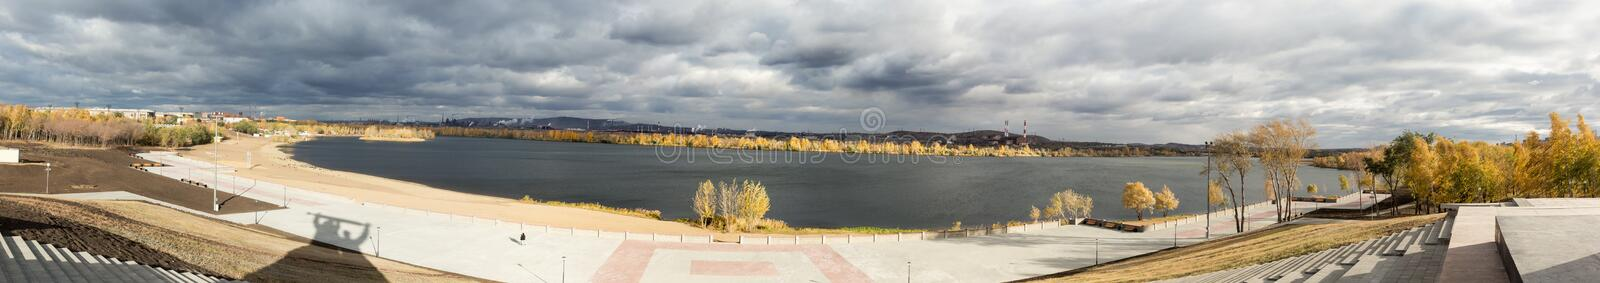 Panoramic view of the Magnitogorsk Metal Works located on the Ural river bank stock photo